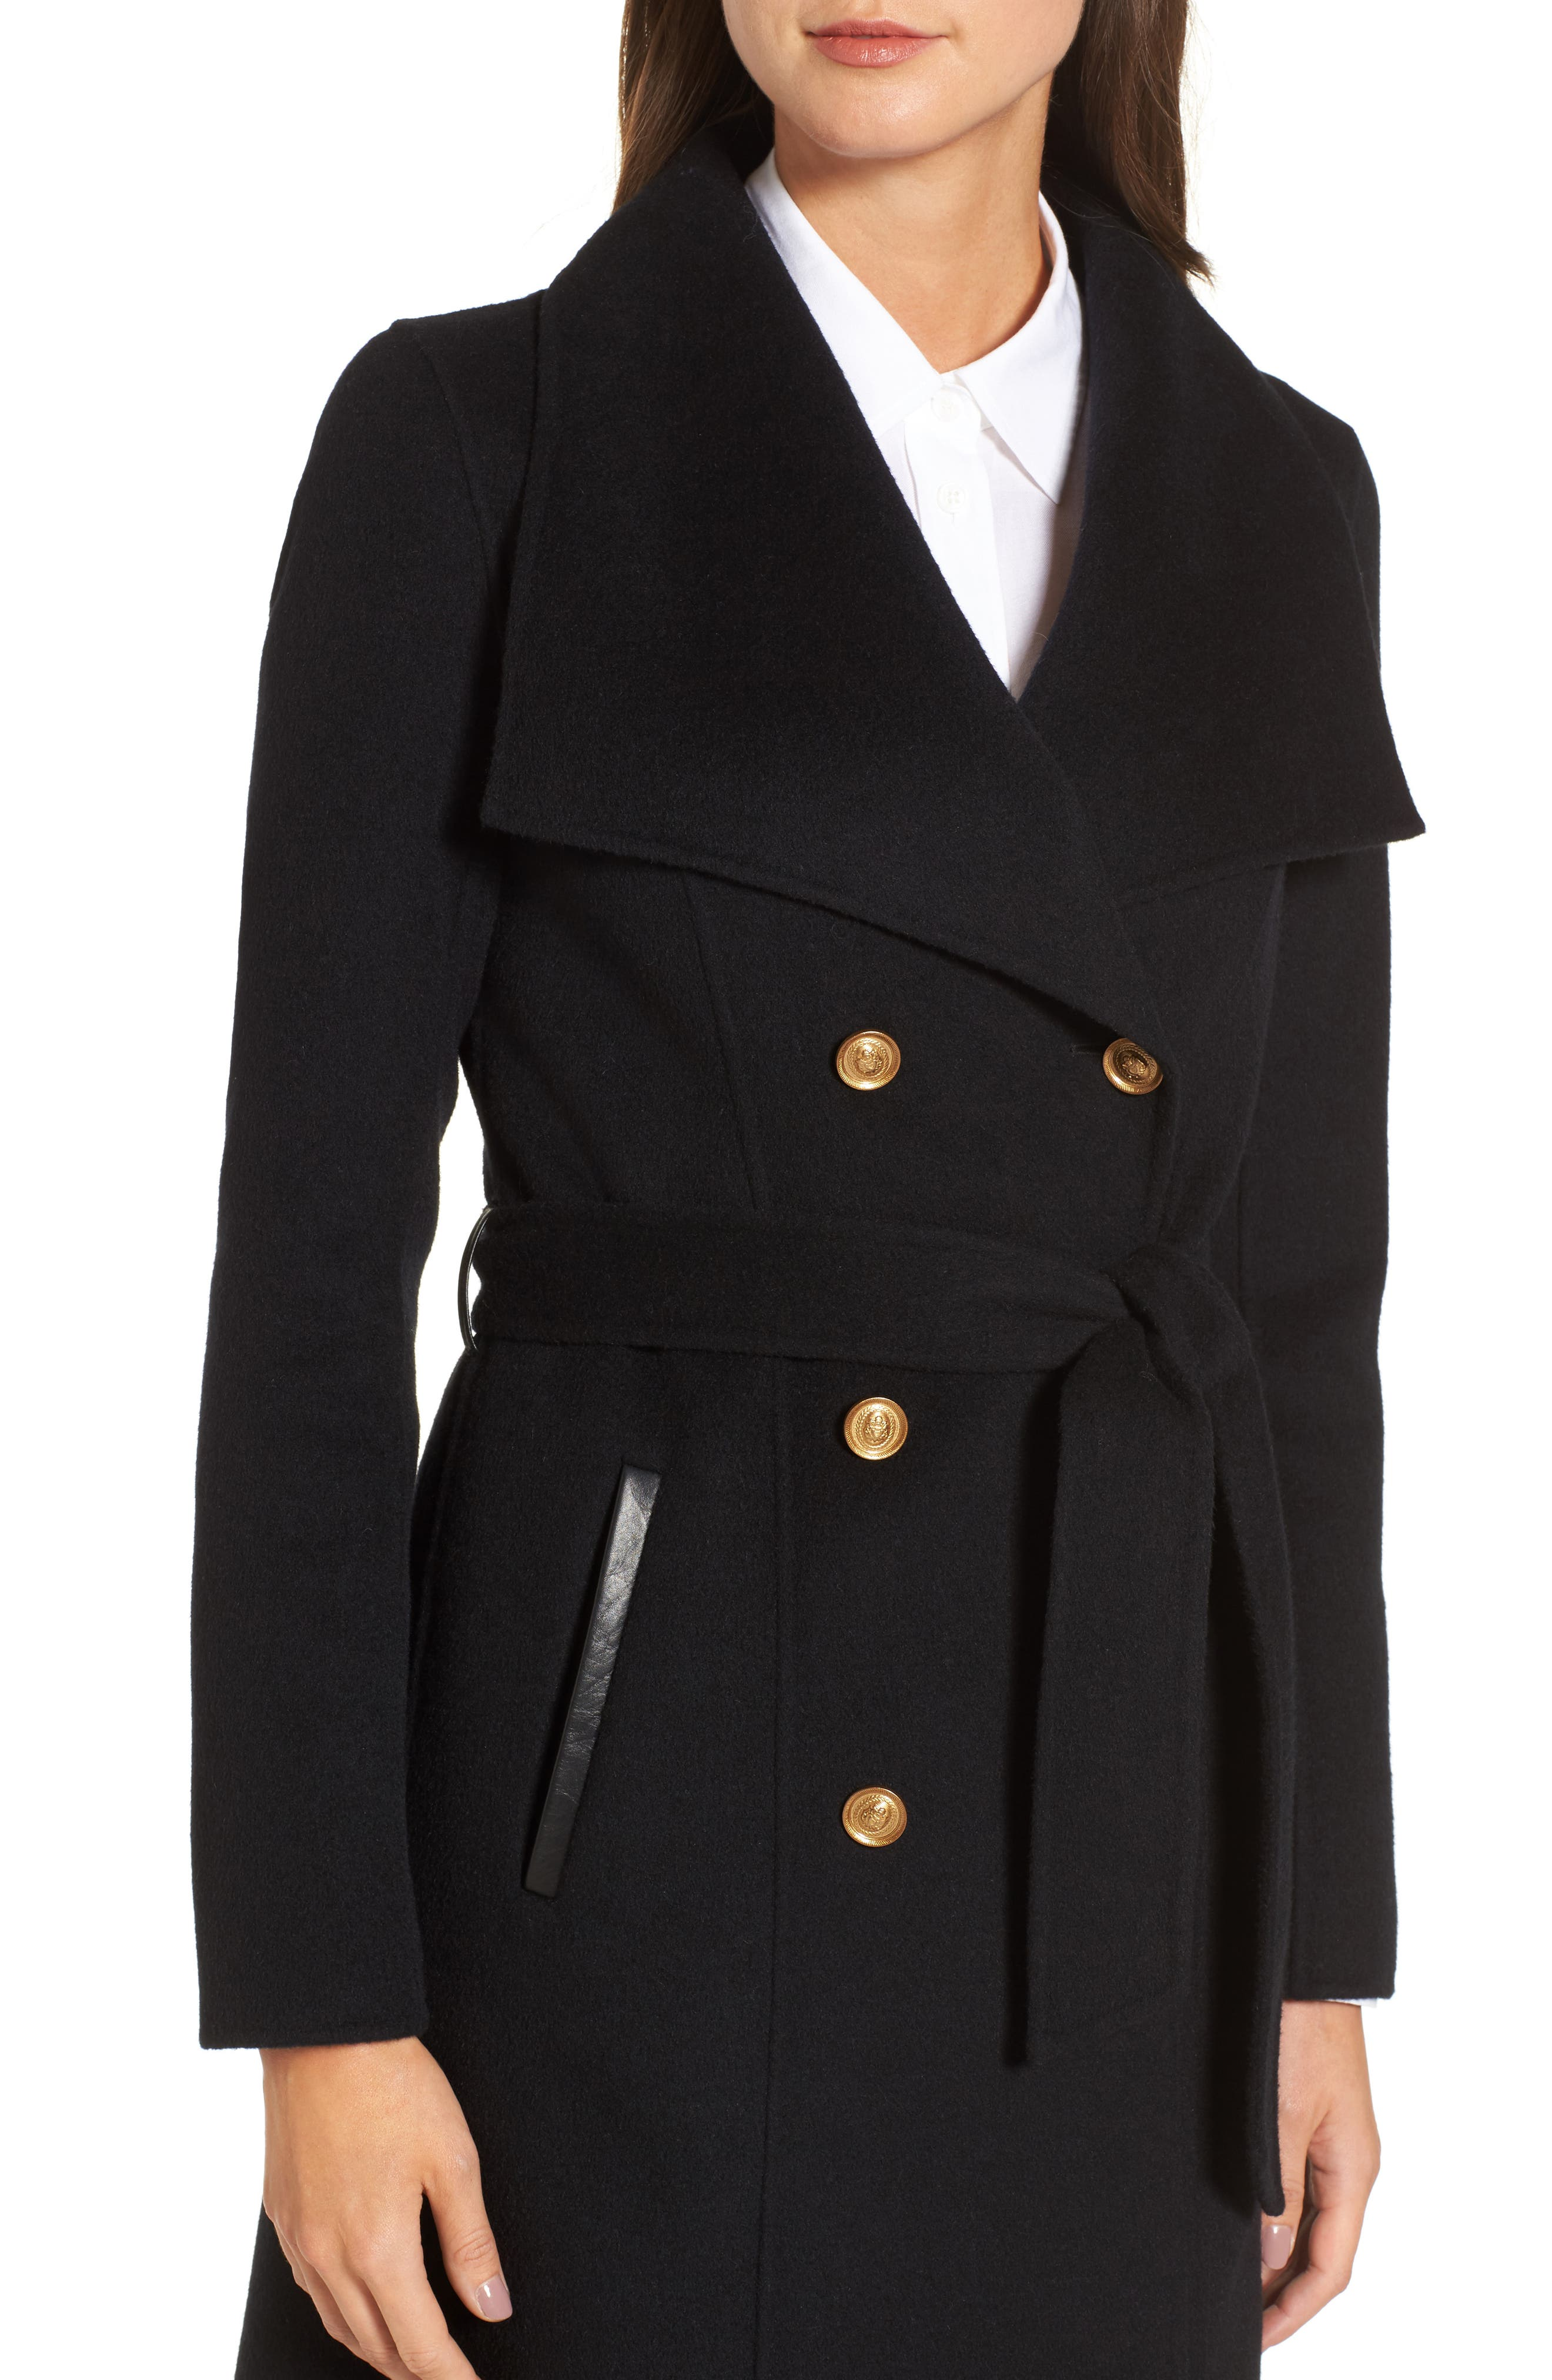 Norah-N Double Breasted Wool Blend Long Military Coat,                             Alternate thumbnail 4, color,                             001